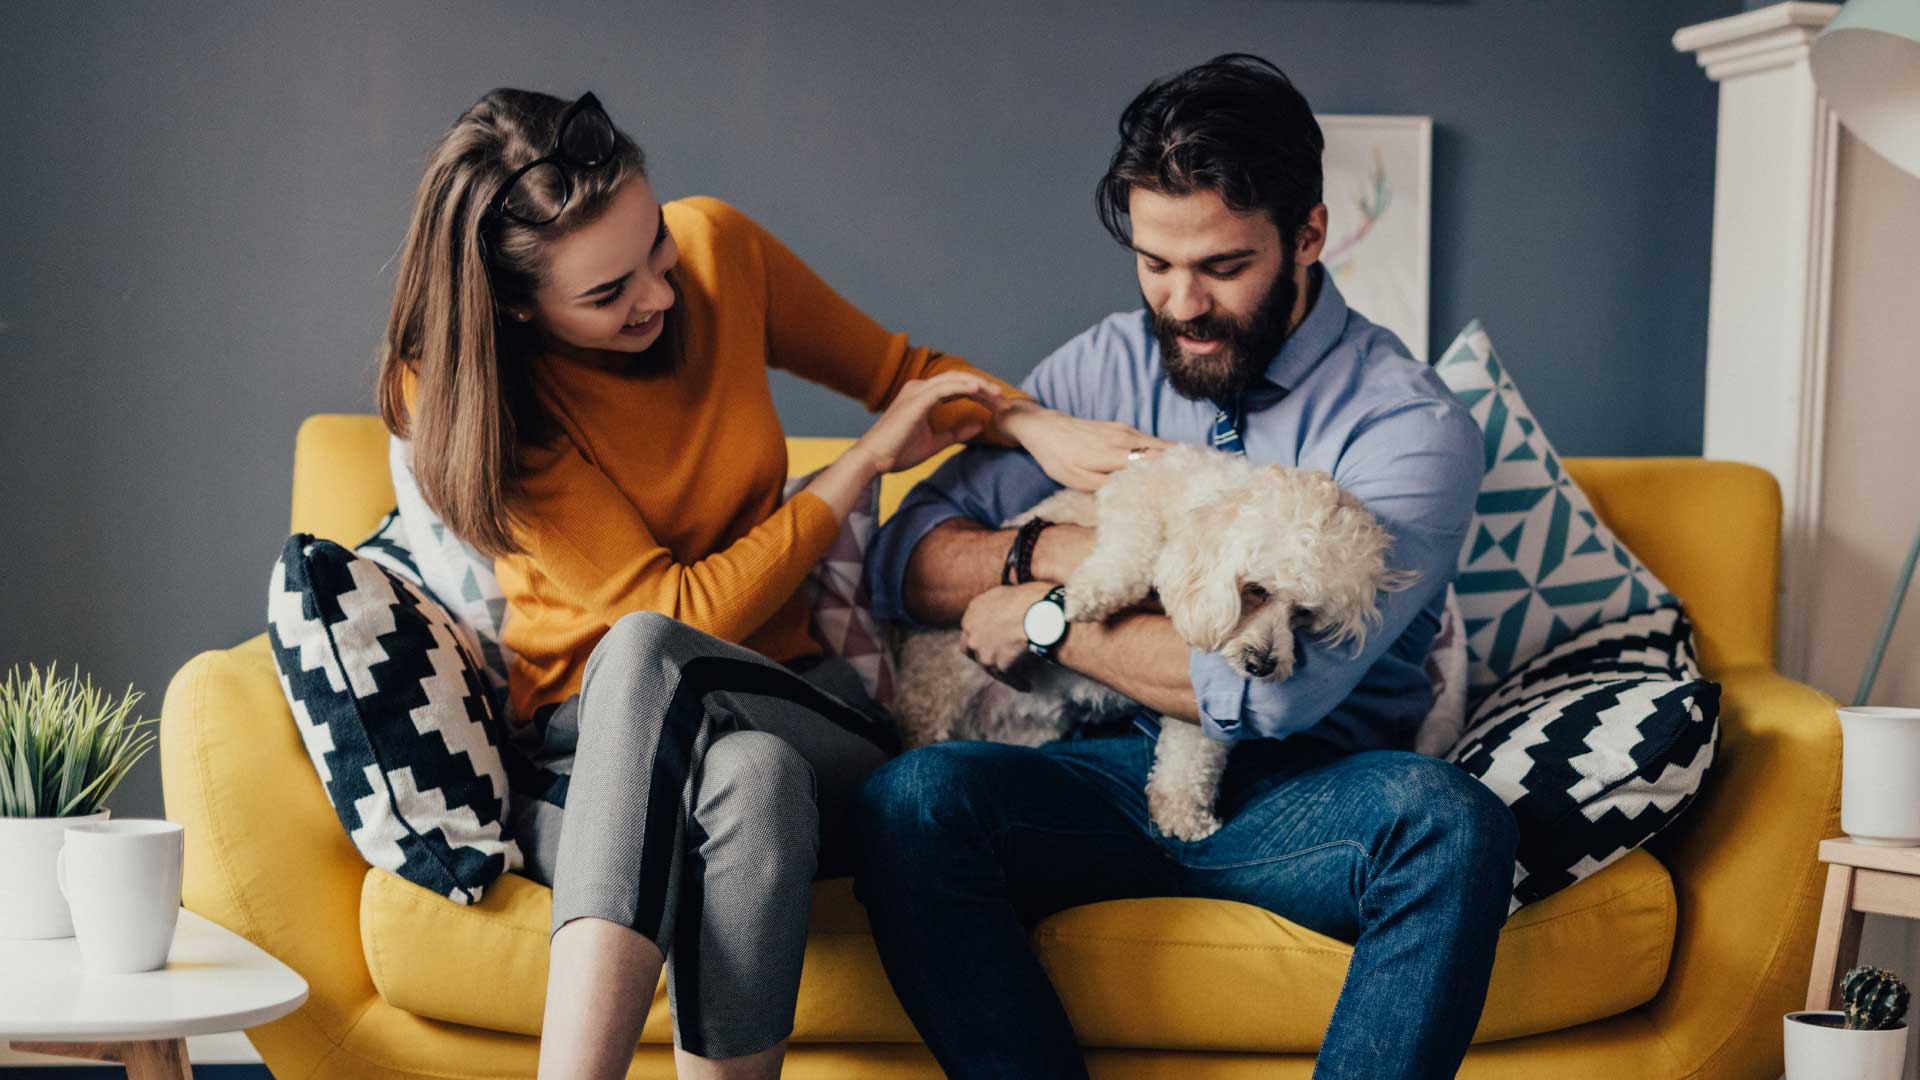 couple_on_couch_with_dog